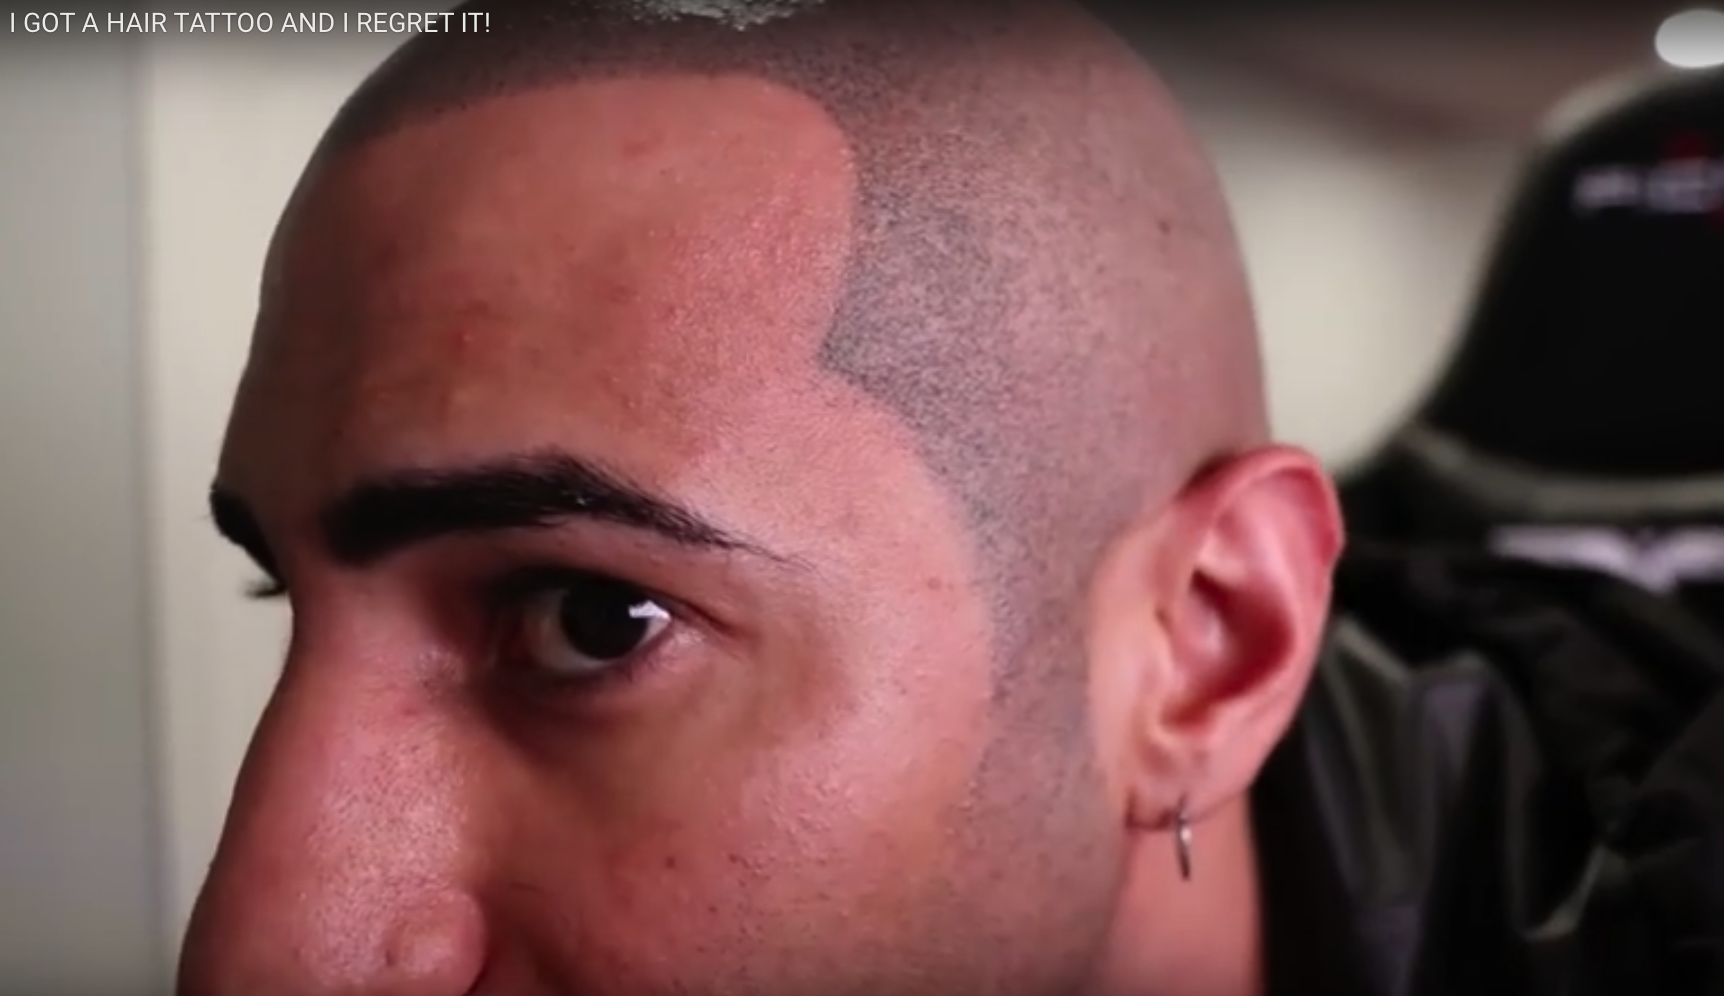 Scalp micropigmentation regrets youtuber skalp for Hair tattoo cost